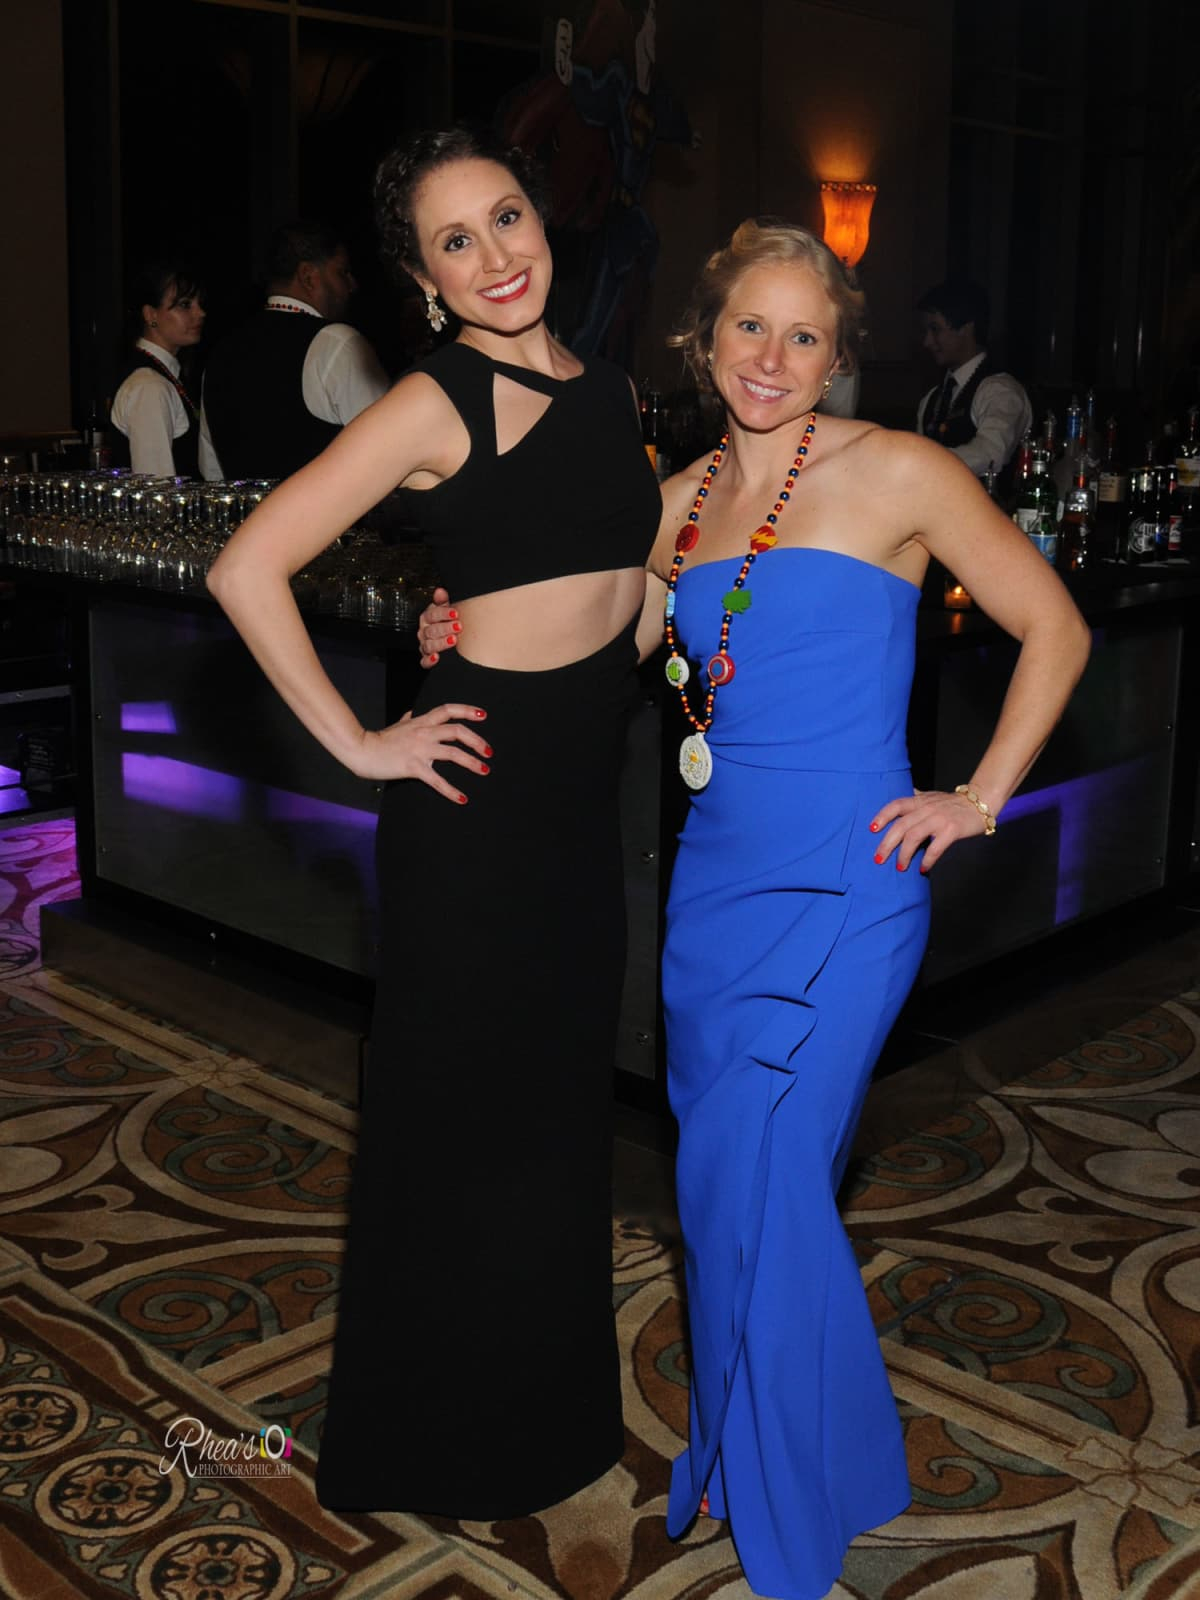 Knights of Momus Ball, Feb. 2016, Carolina Gomez, Kara Mullins